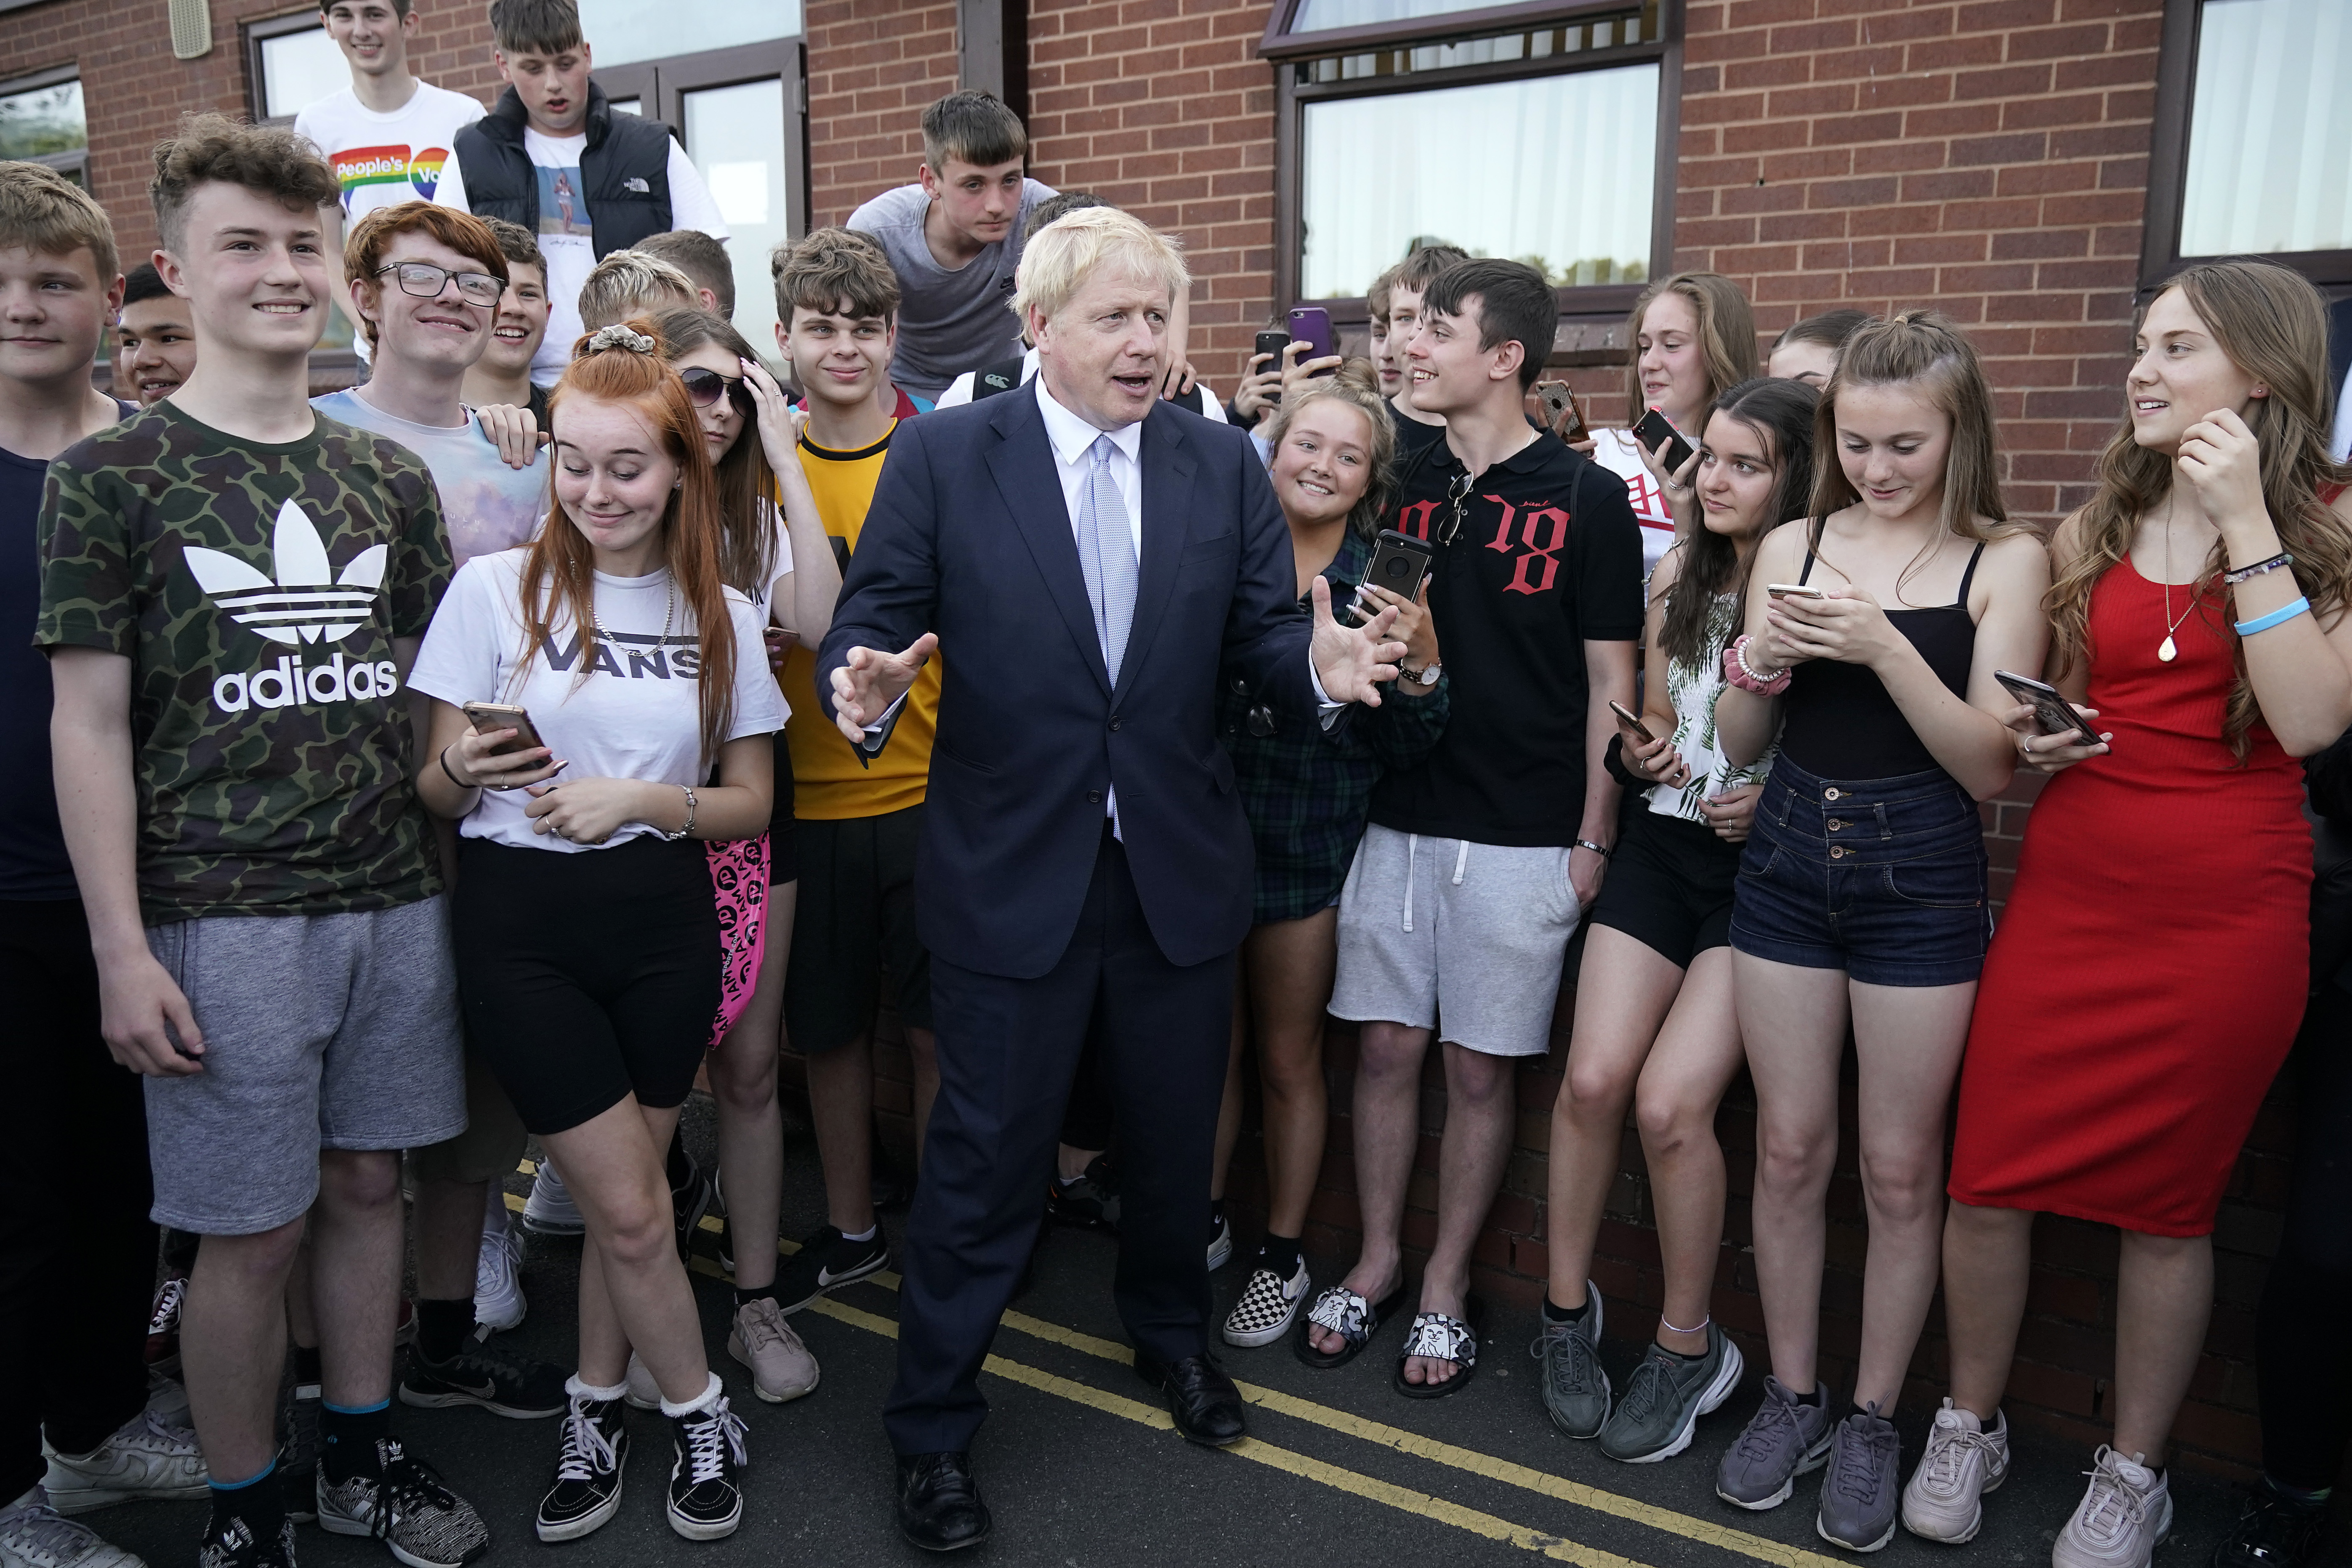 Conservative party leadership contender Boris Johnson at a campaign event in Wombourne in the West Midlands.